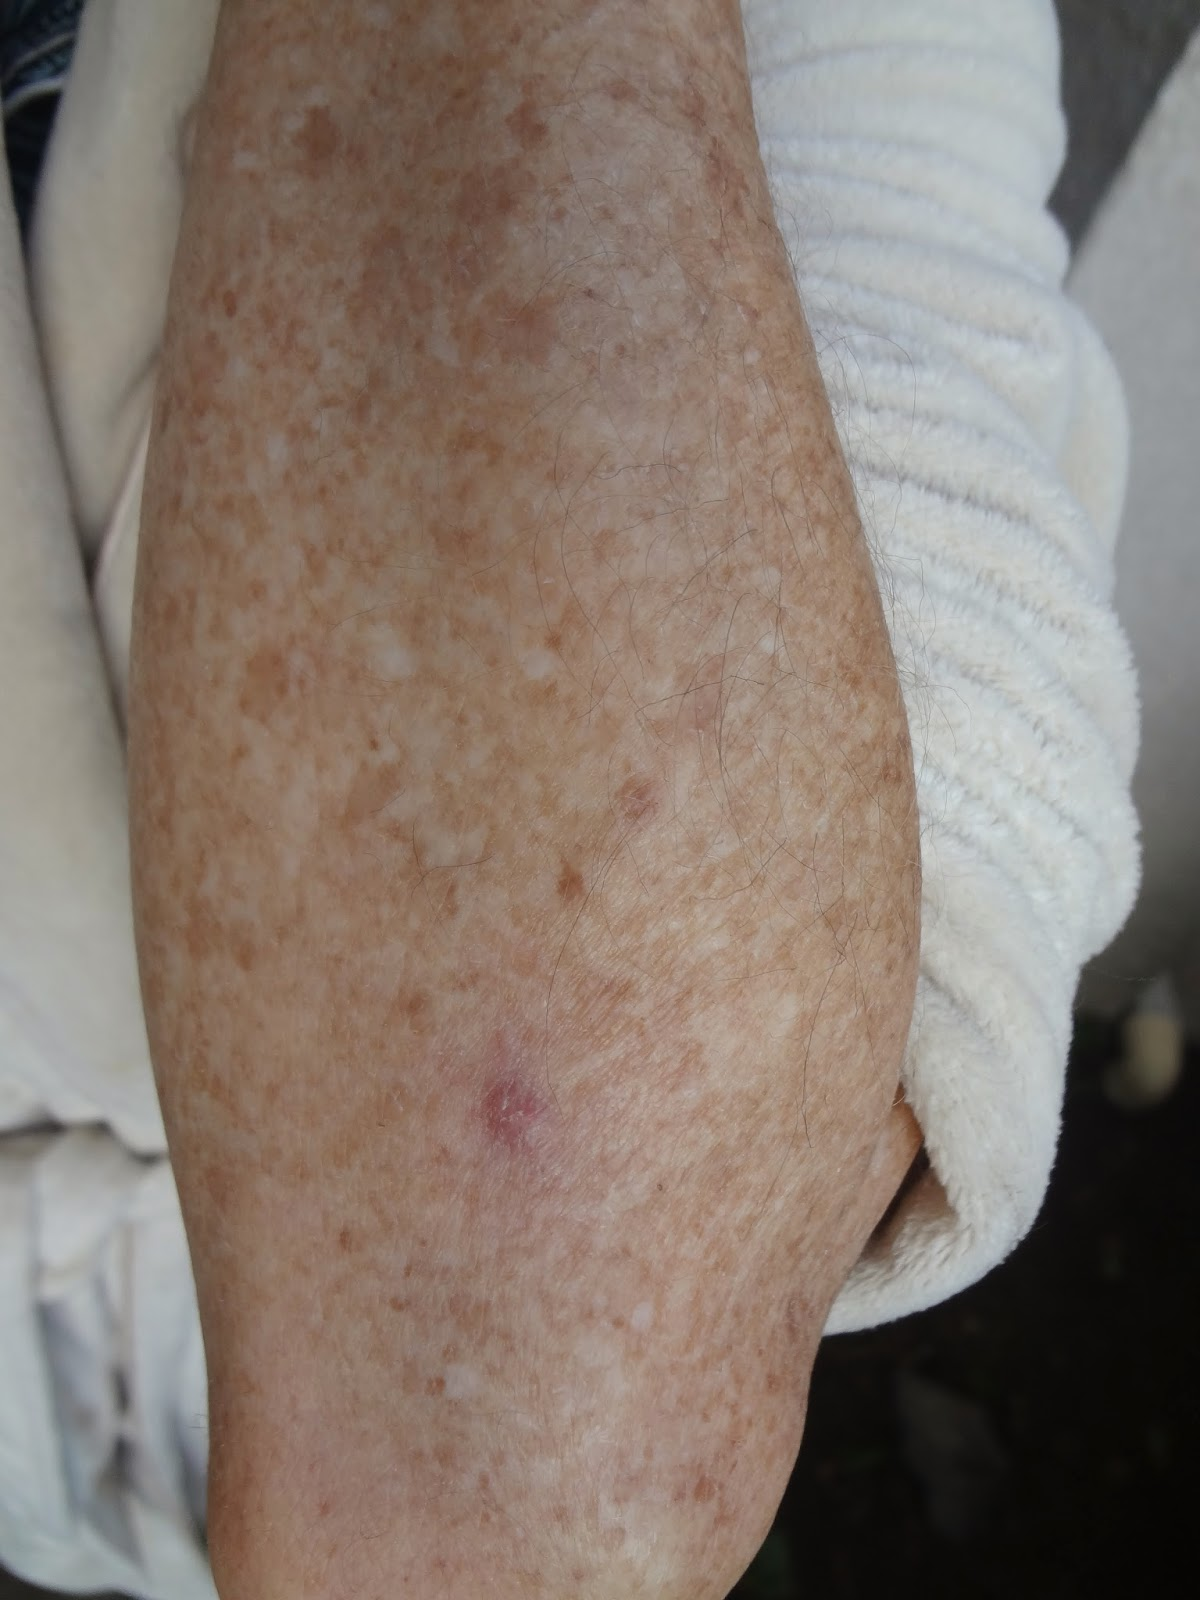 Healed skin cancer